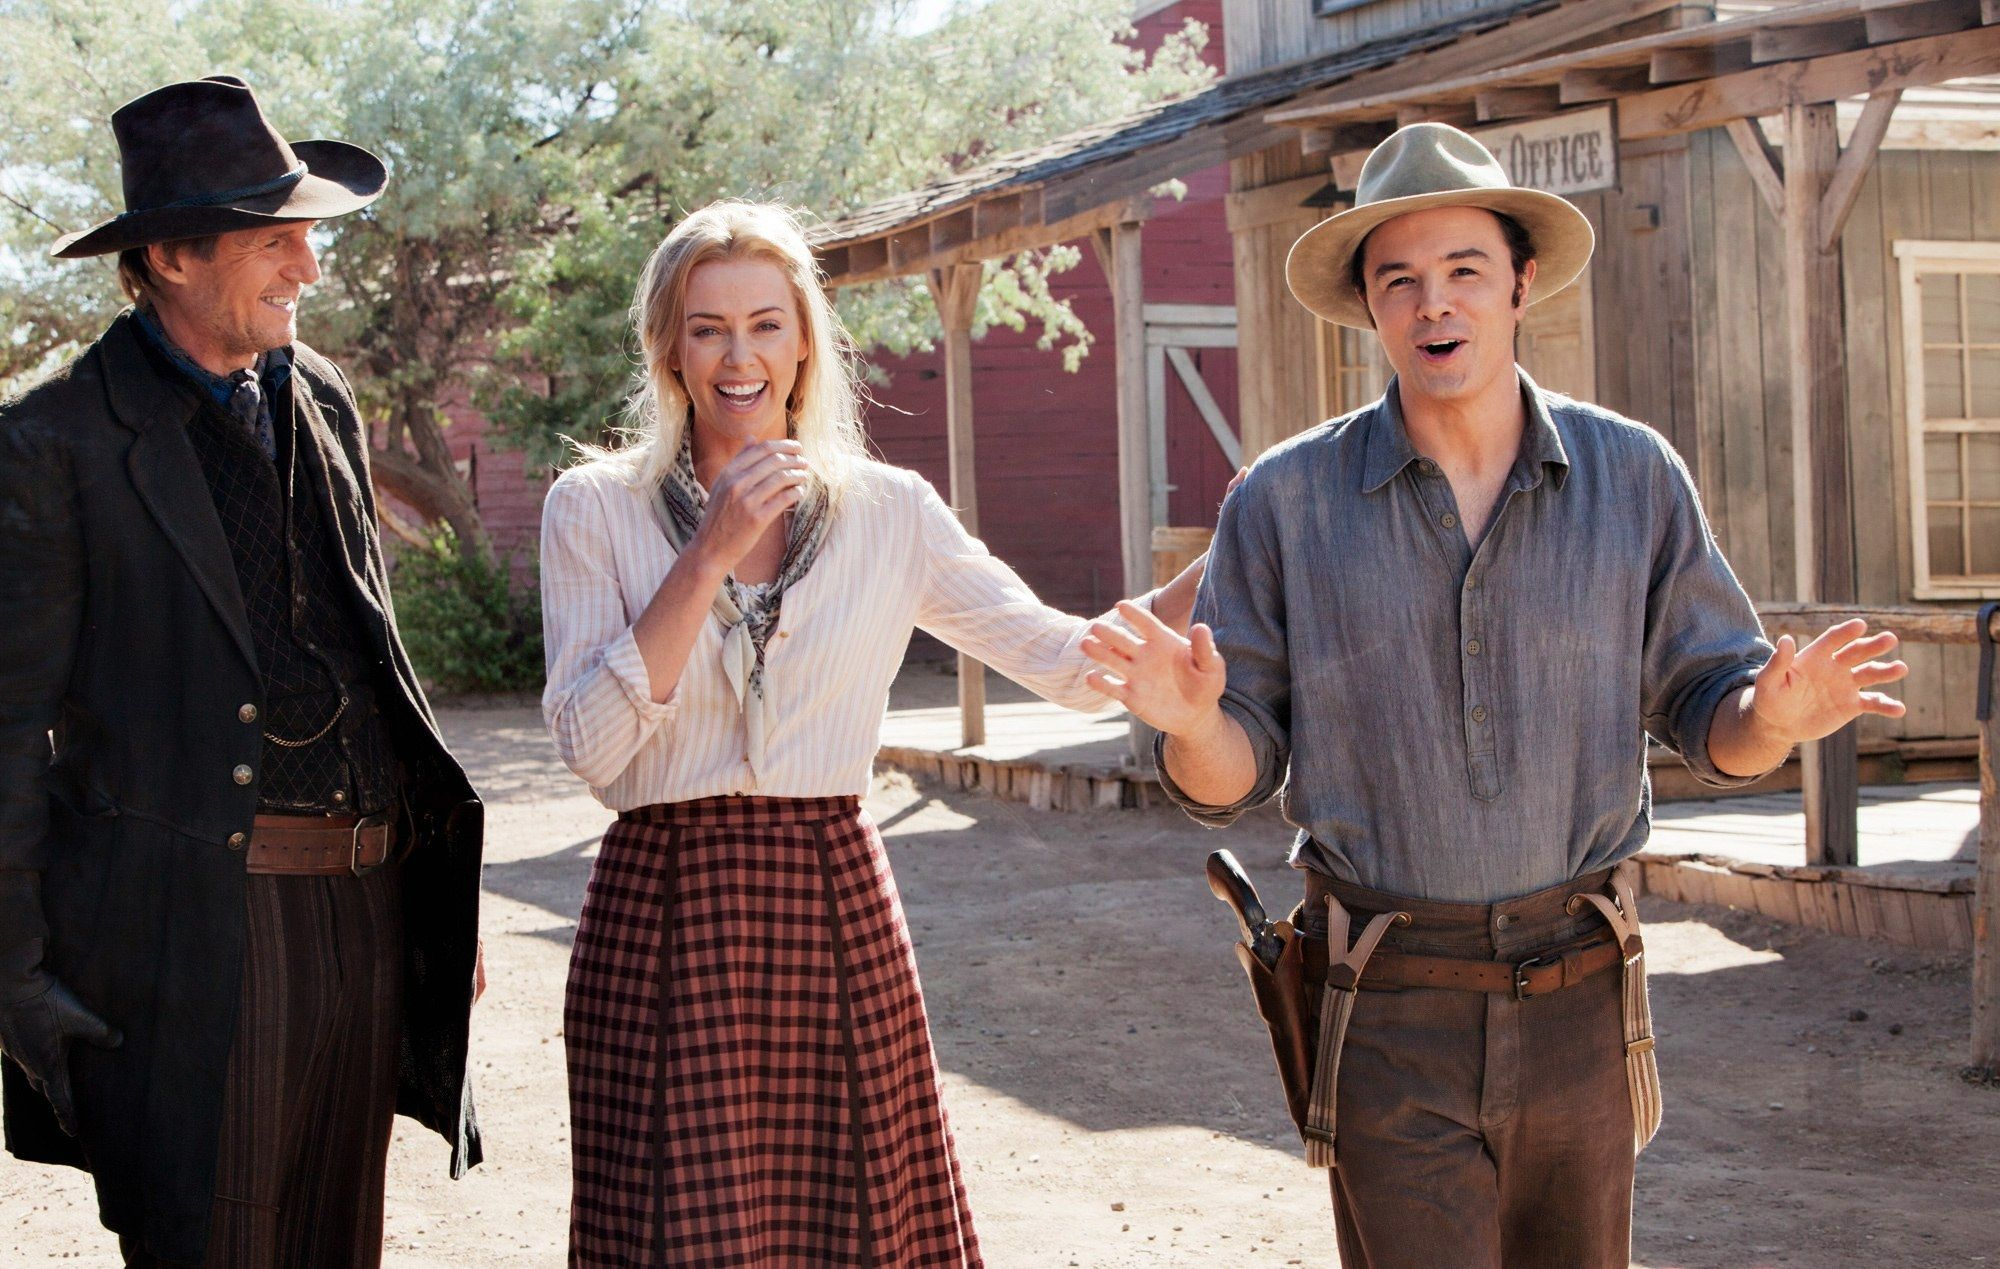 A Million Ways To Die In The West Stream On The Set Of A Million Ways To Die In The West 2014 L To R Liam Neeson Charlize Theron Co Writer Co Producer Liam Neeson Charlize Theron Western Film